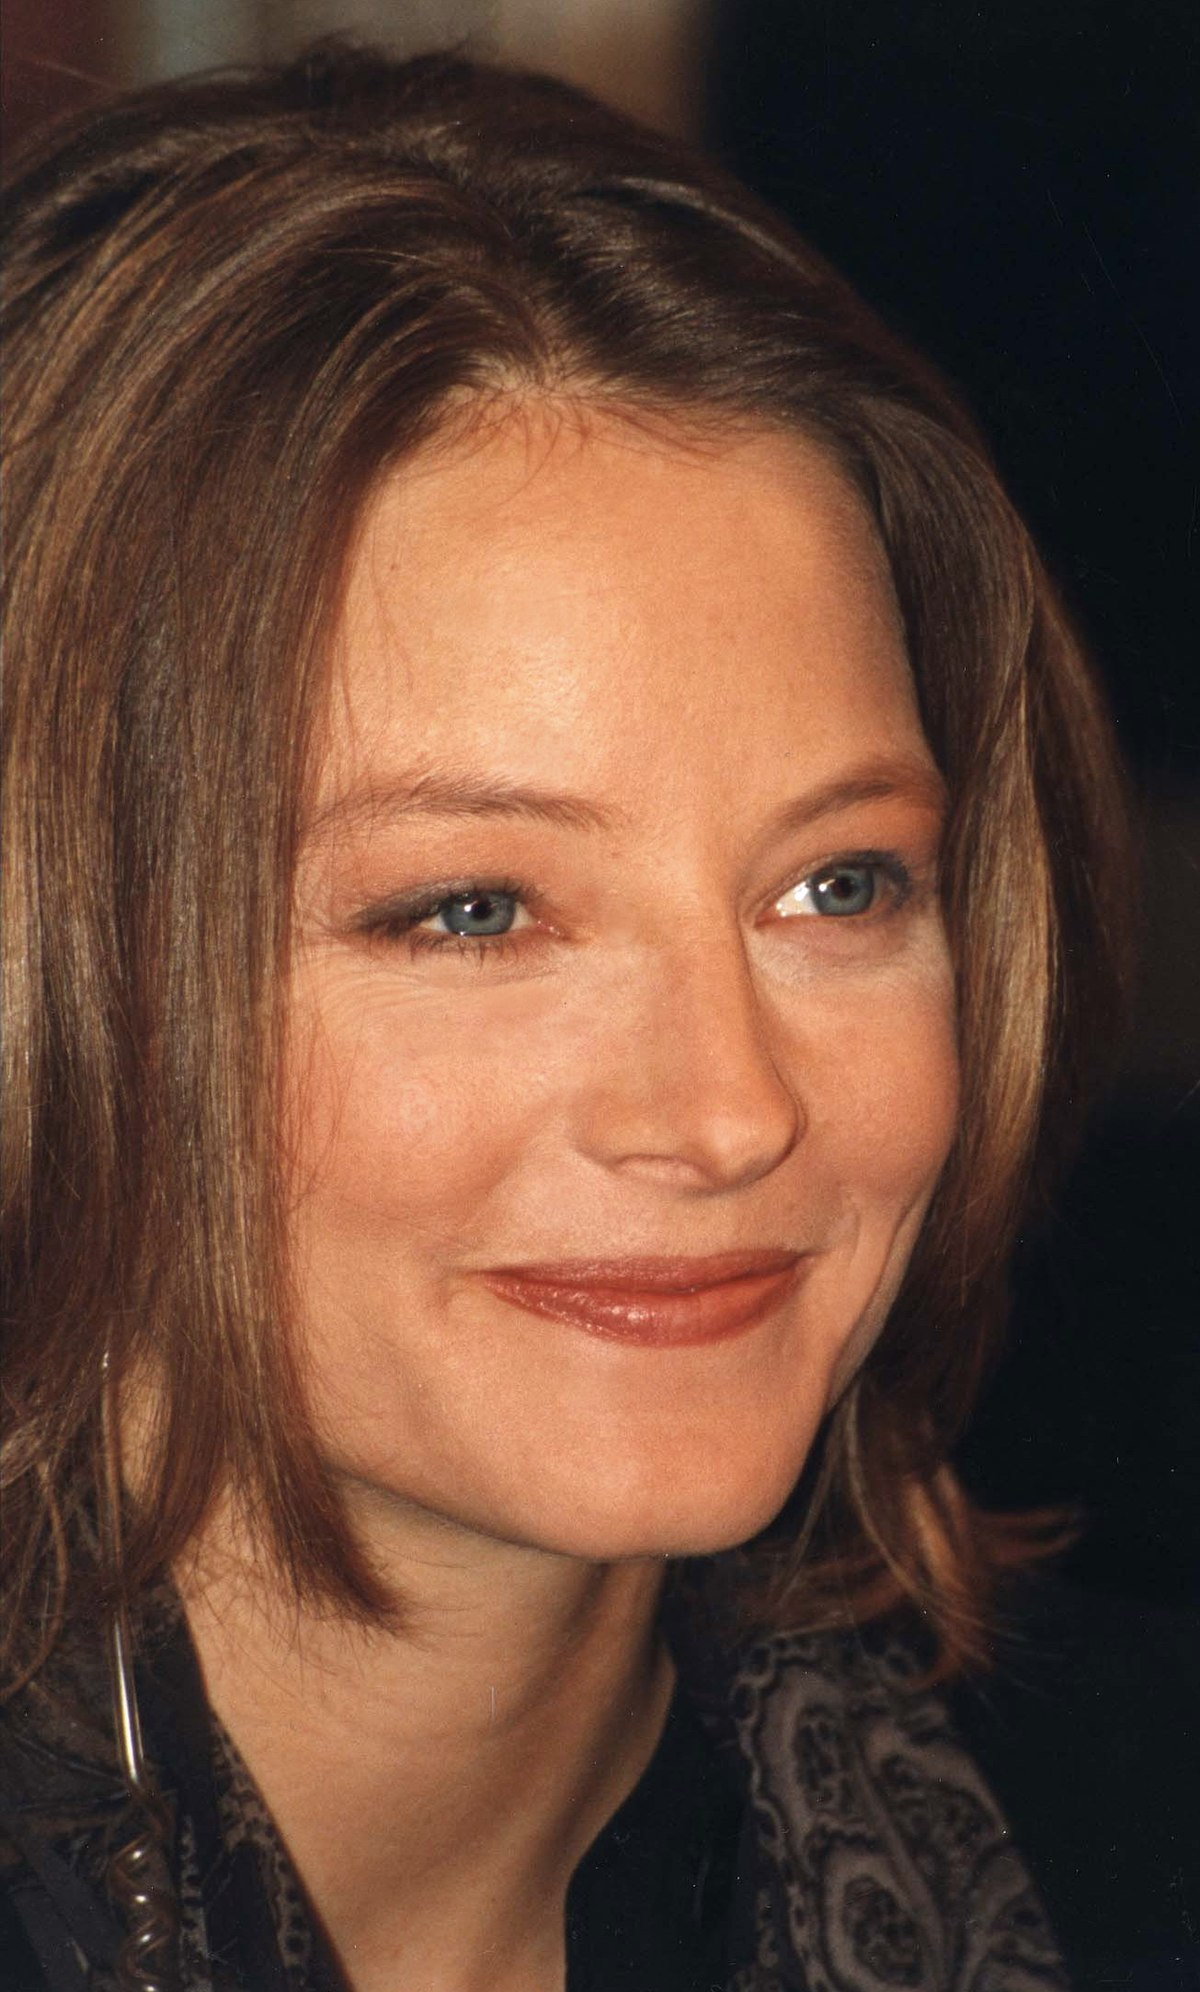 jodie foster - photo #11